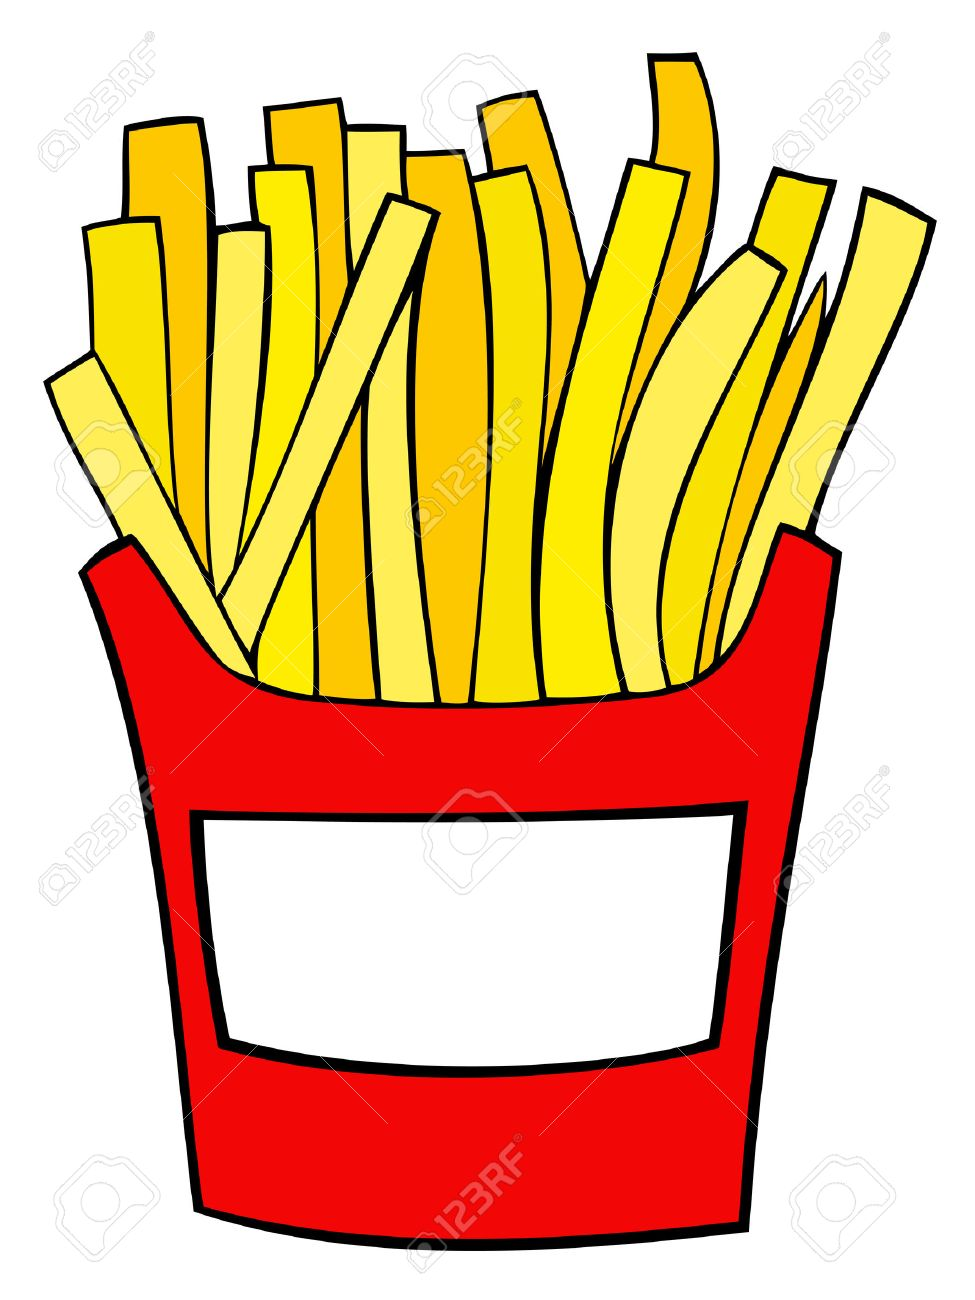 Fries clipart. French station